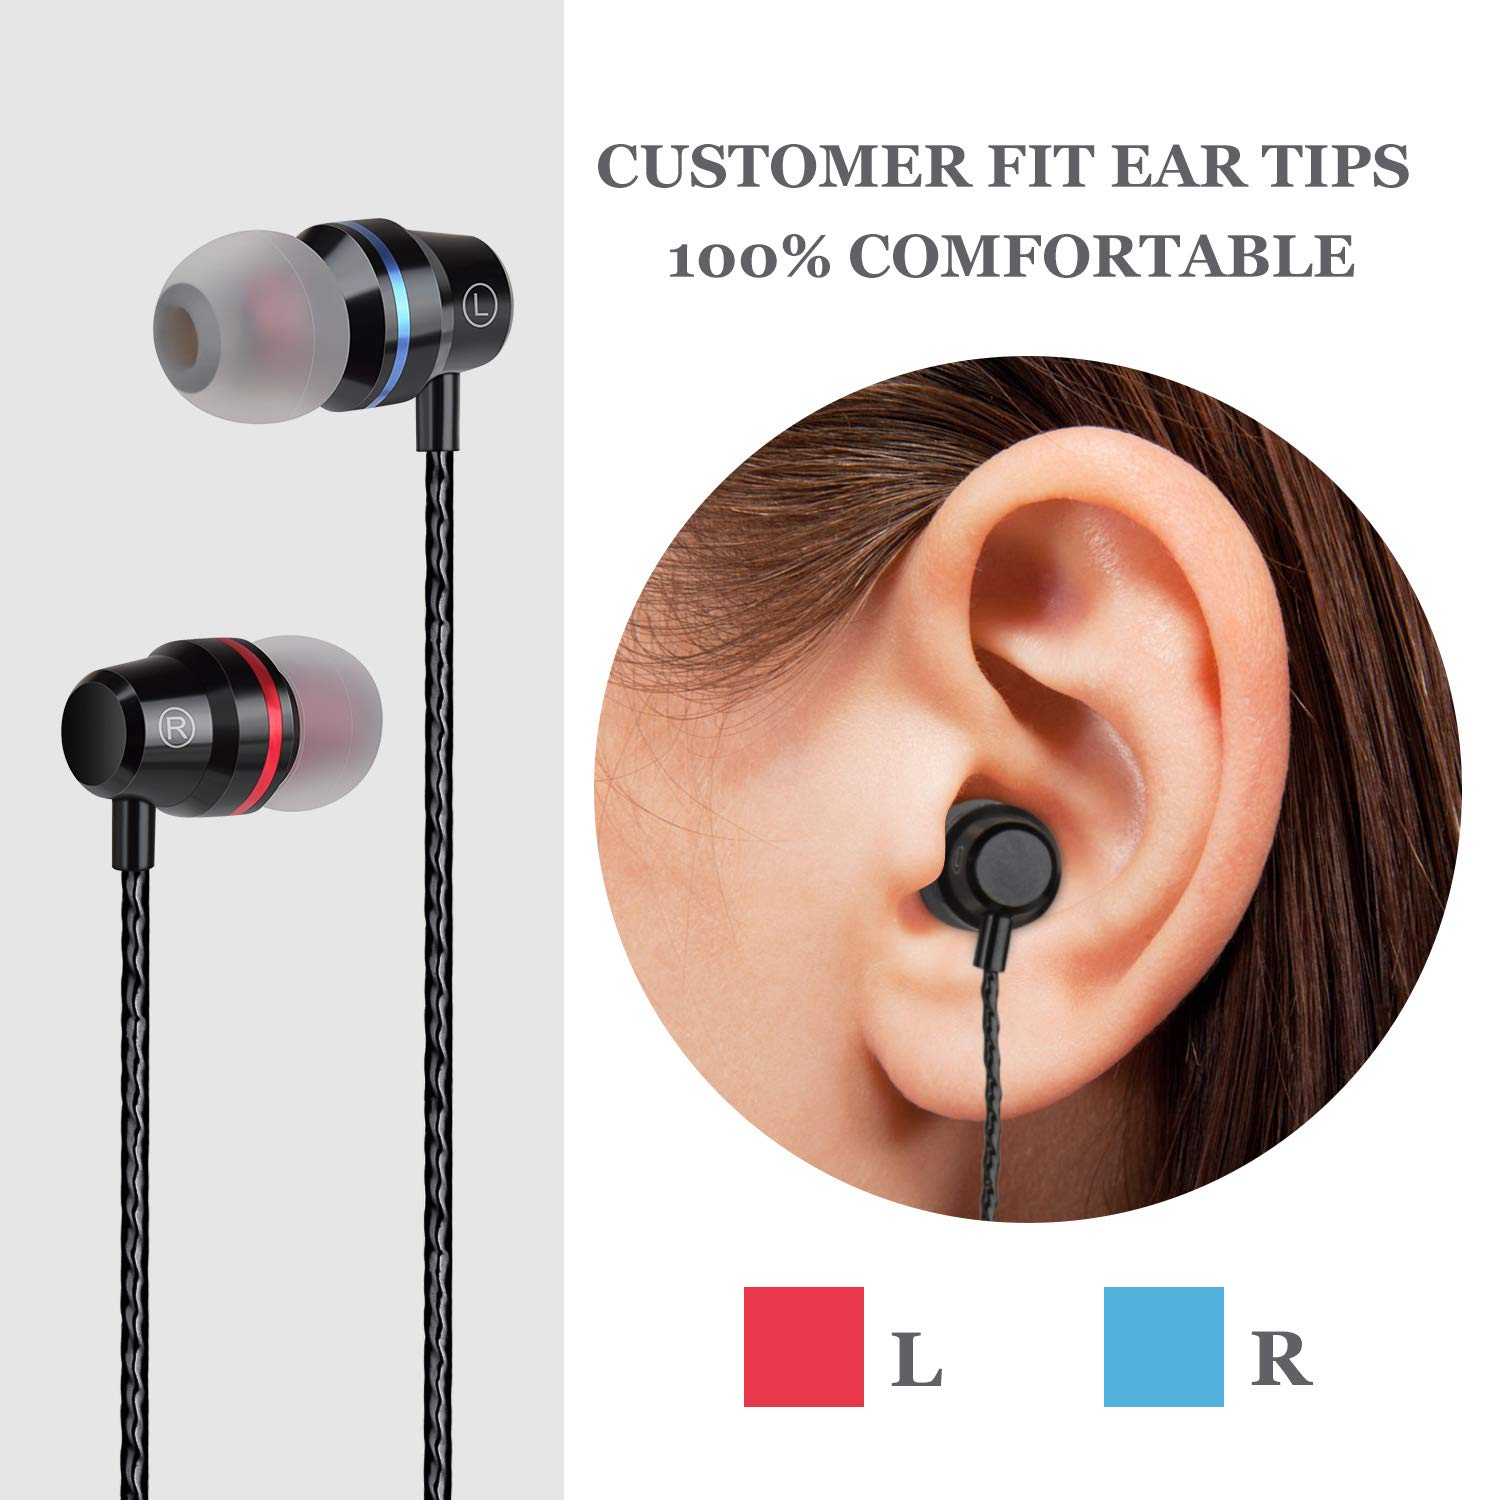 Earbuds Ear Buds Wired Headphones Microphone in Ear Earphones Stereo Mic Volume Control Android Smart Phones iPhone iPad Samsung Music Noise Cancelling 3.5mm Audio Headphones by Gsebr (Image #6)